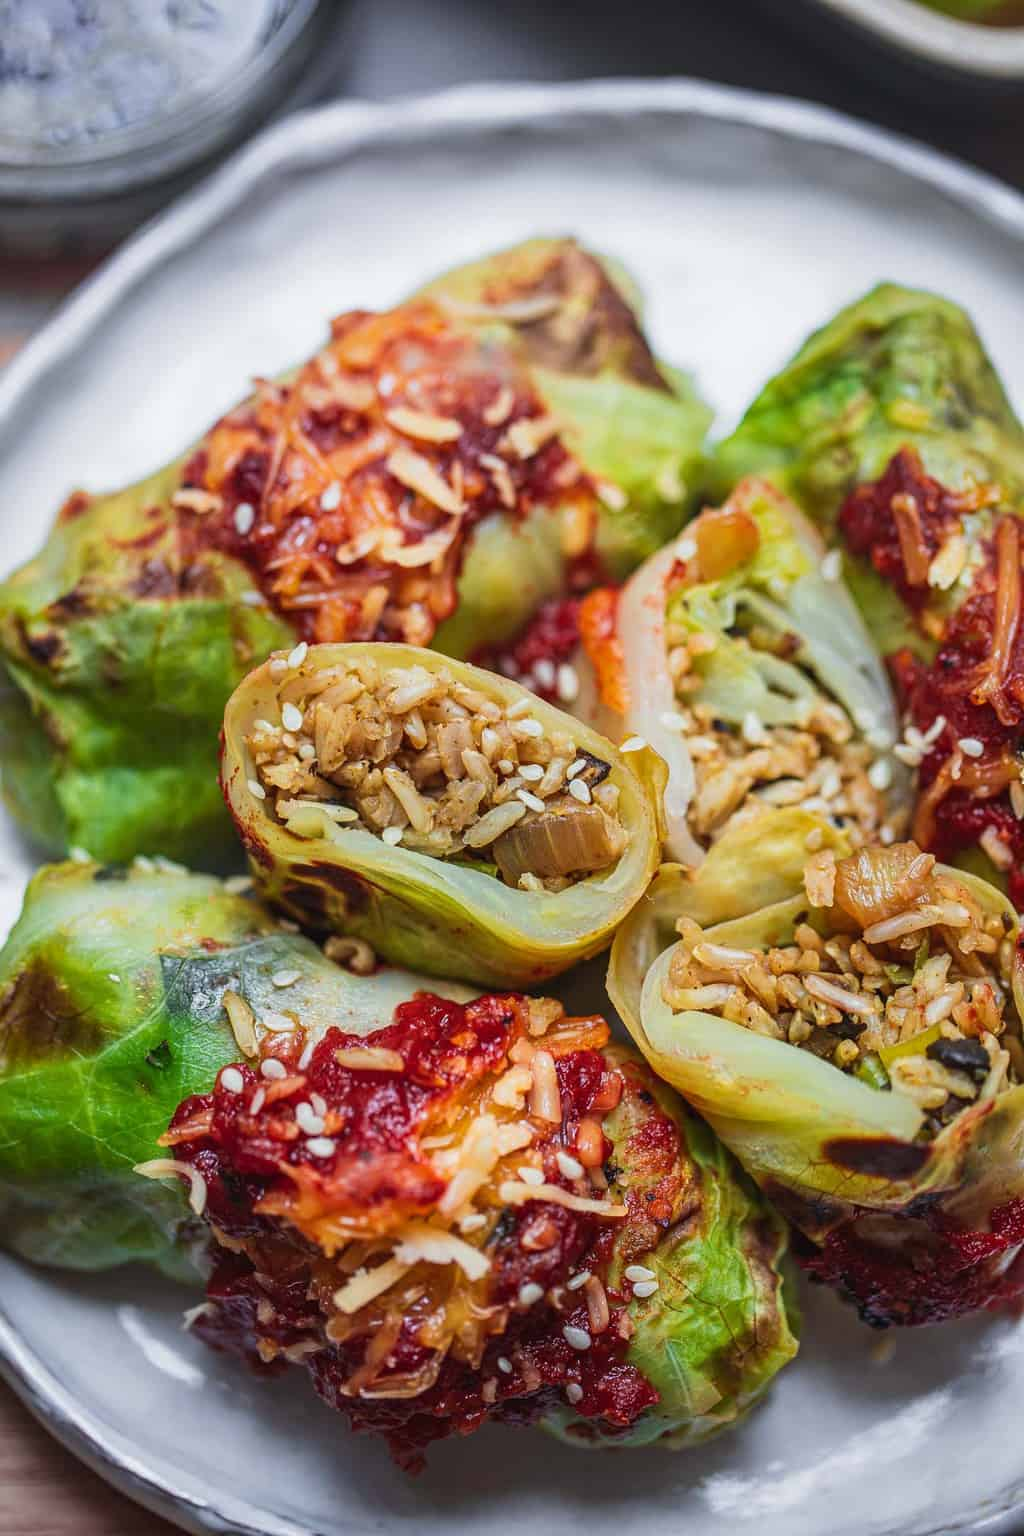 Plate with vegan cabbage rolls stuffed with rice and mushrooms